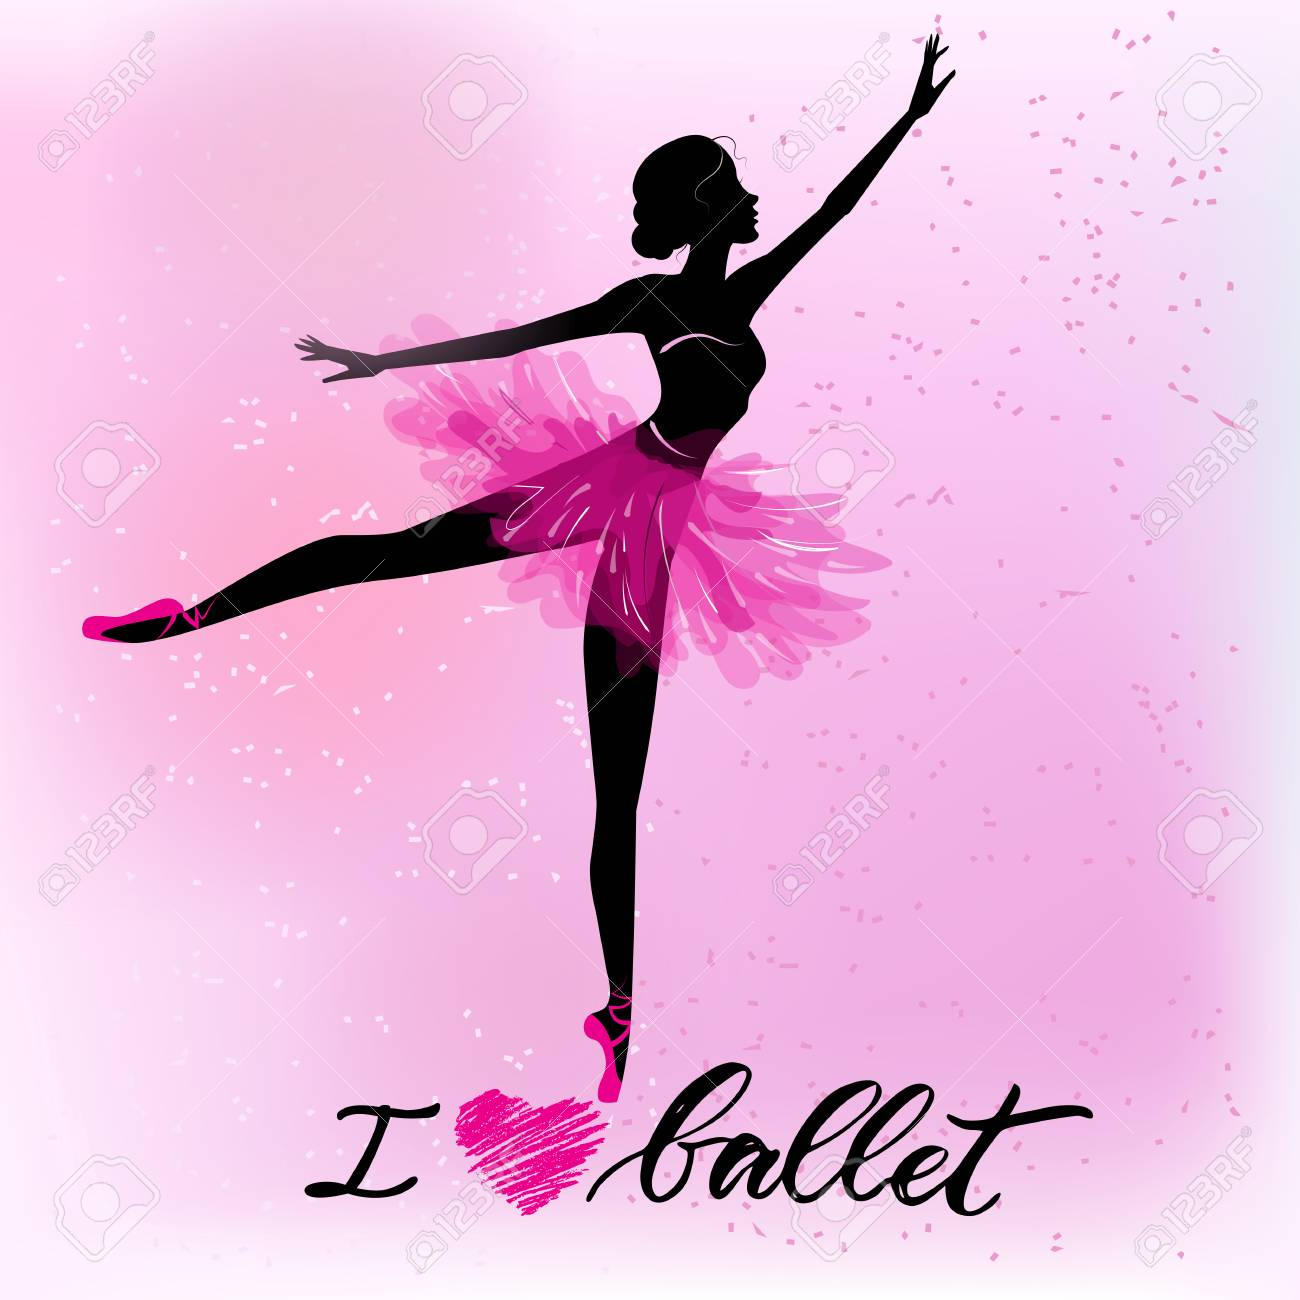 Silhouette of young ballerina - 97070283